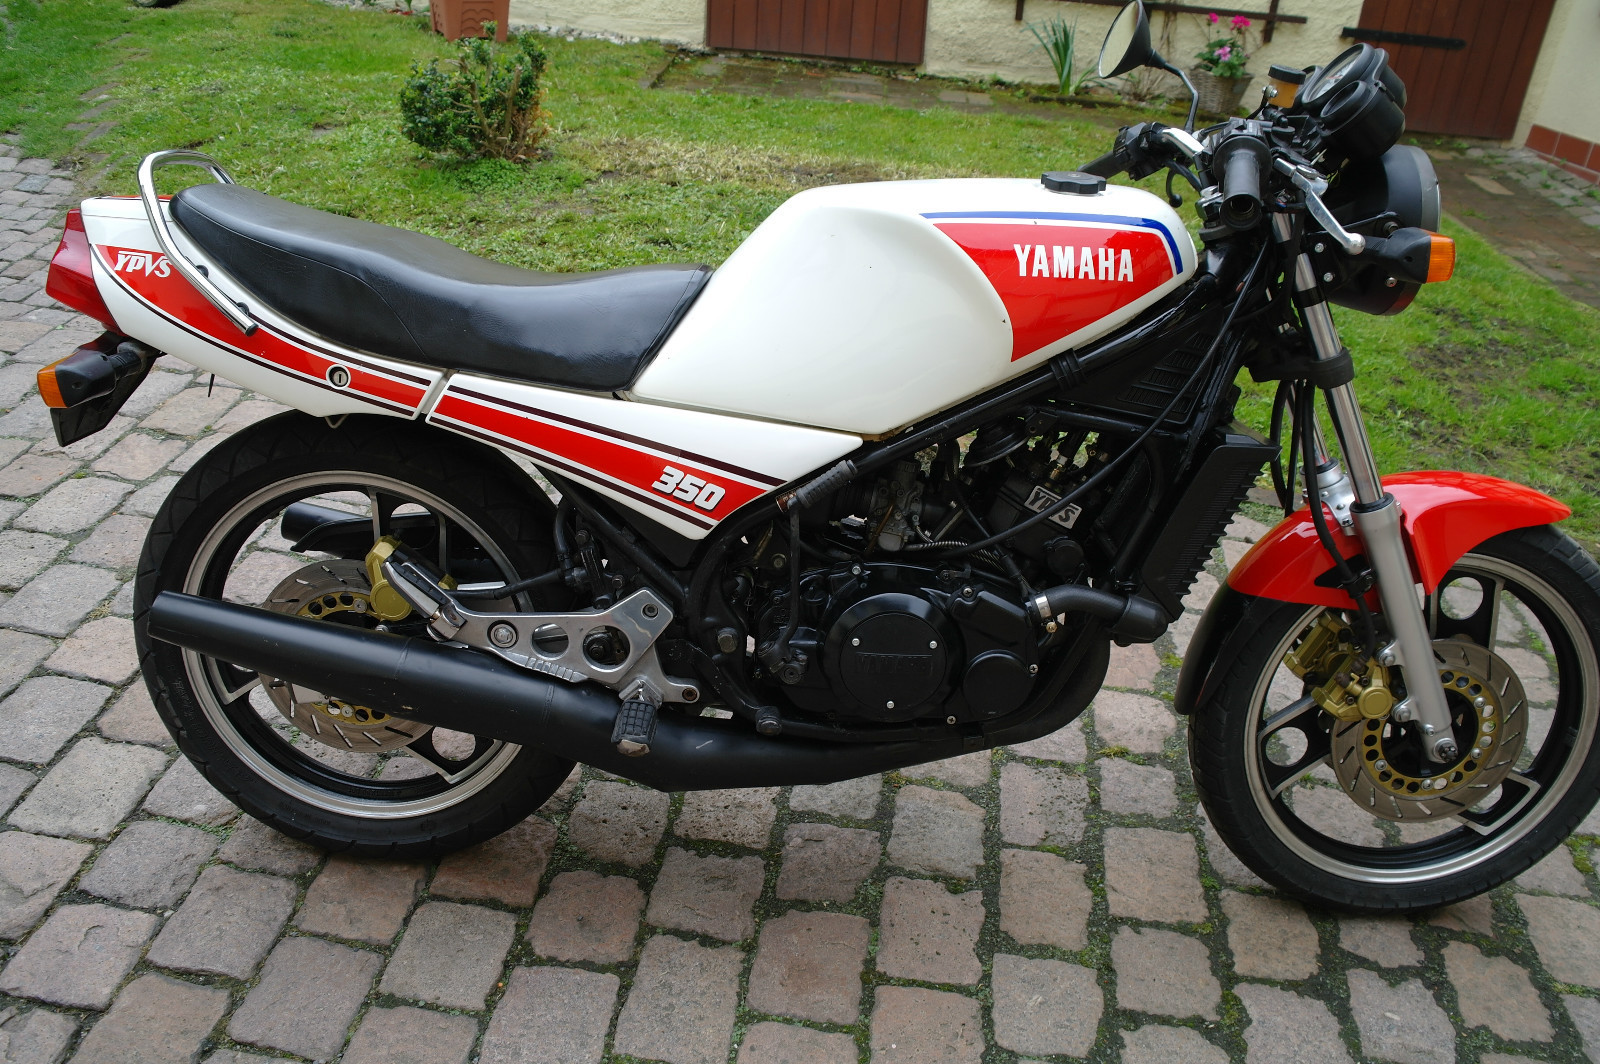 RD350 Archives - Rare SportBikes For Sale